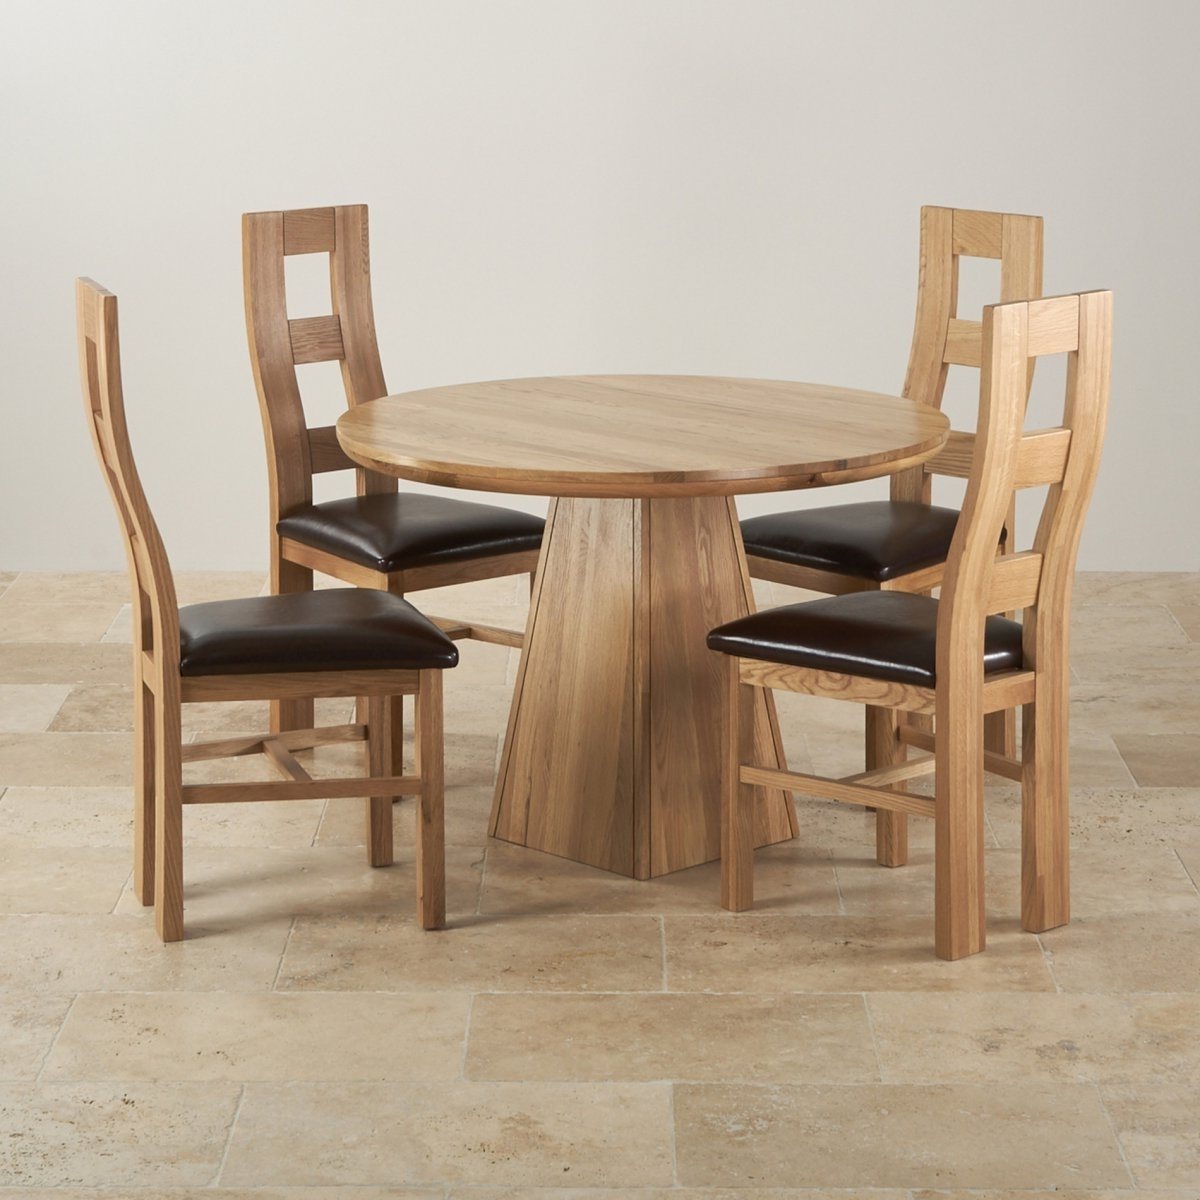 Provence Solid Oak Dining Set 3Ft 7Quot Table With 4 Chairs Luxury In Well Known Oak Dining Tables And 4 Chairs (View 16 of 25)